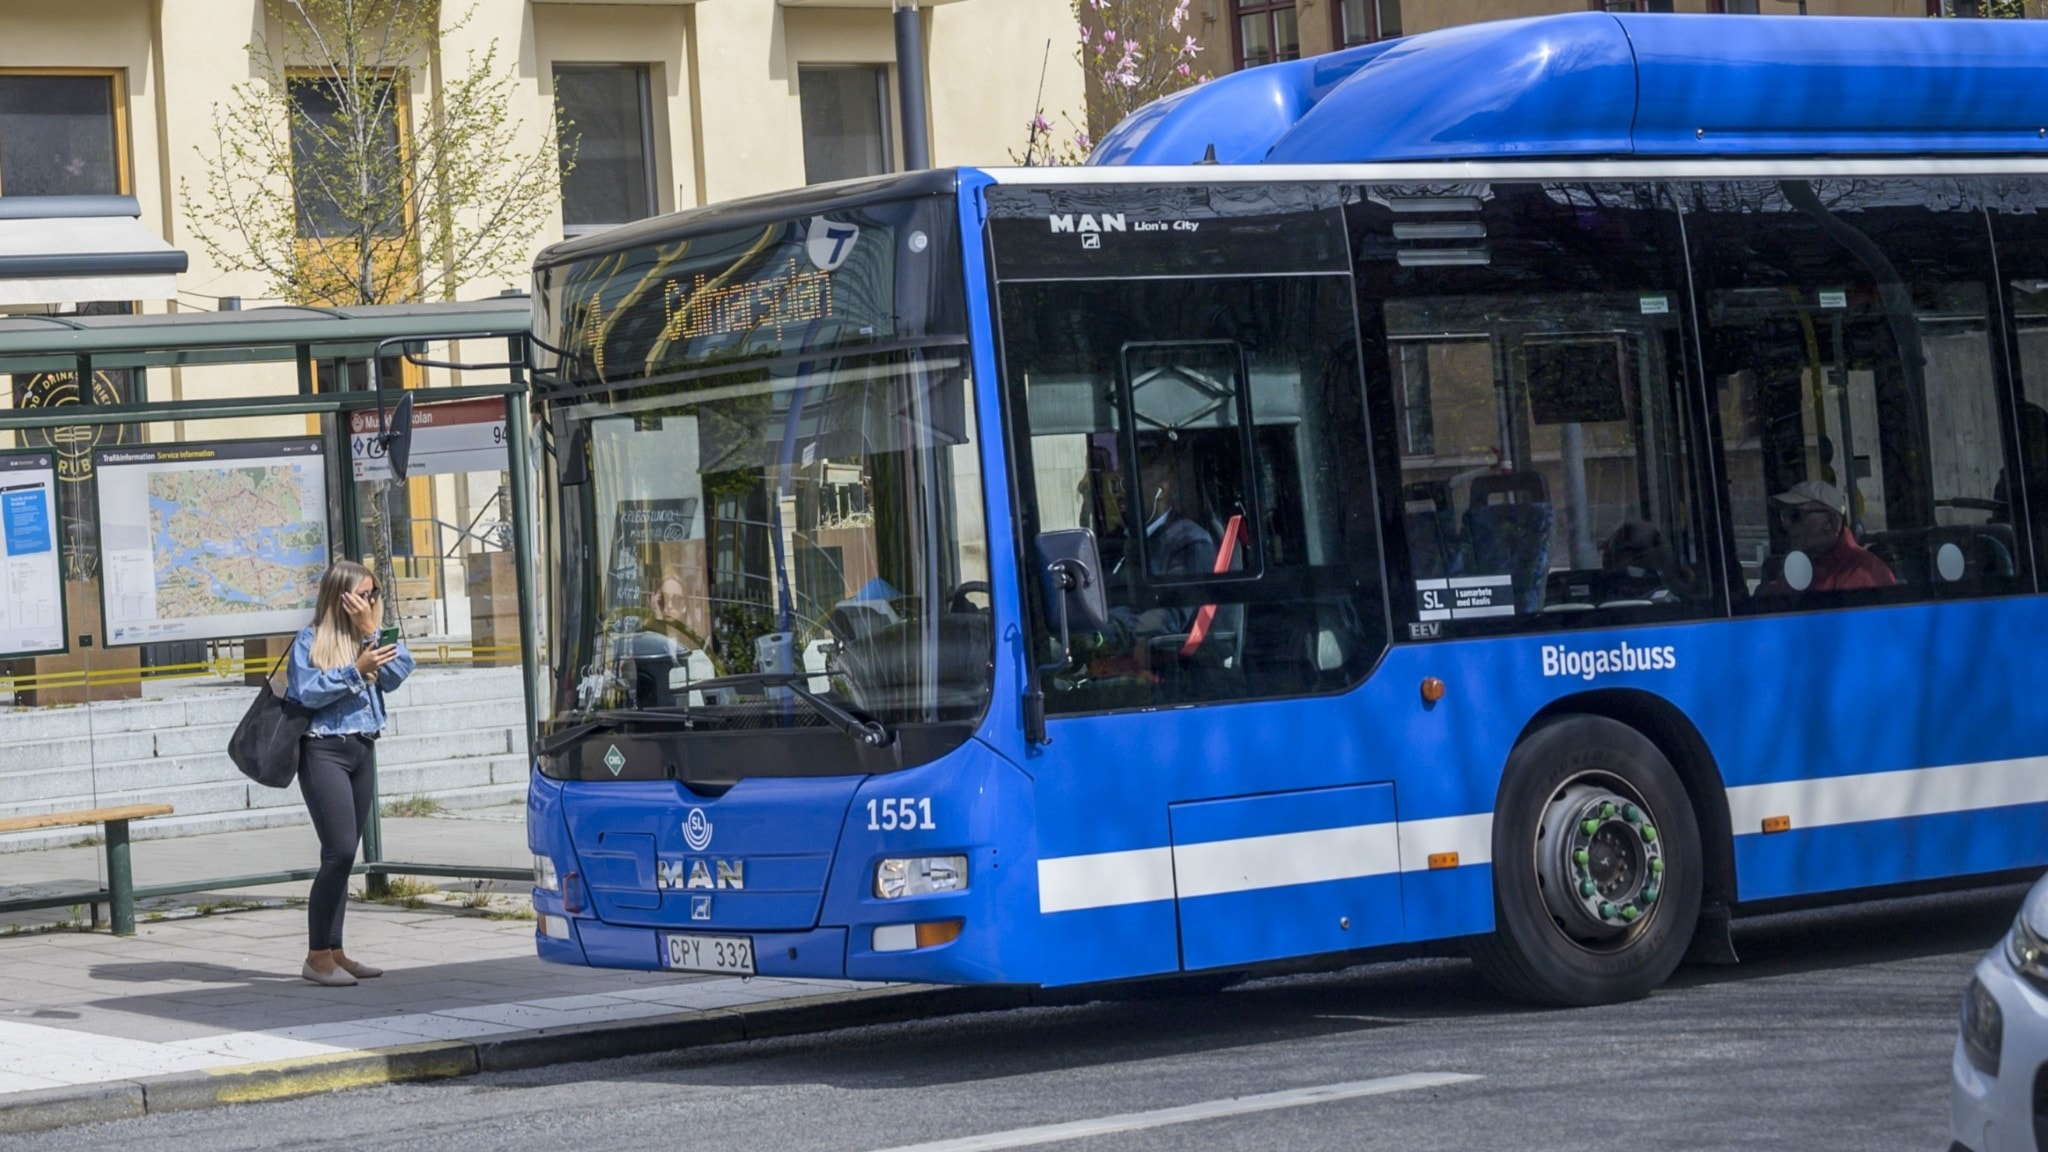 Stockholm public transport operator appeals to public to help avoid crowding - Radio Sweden